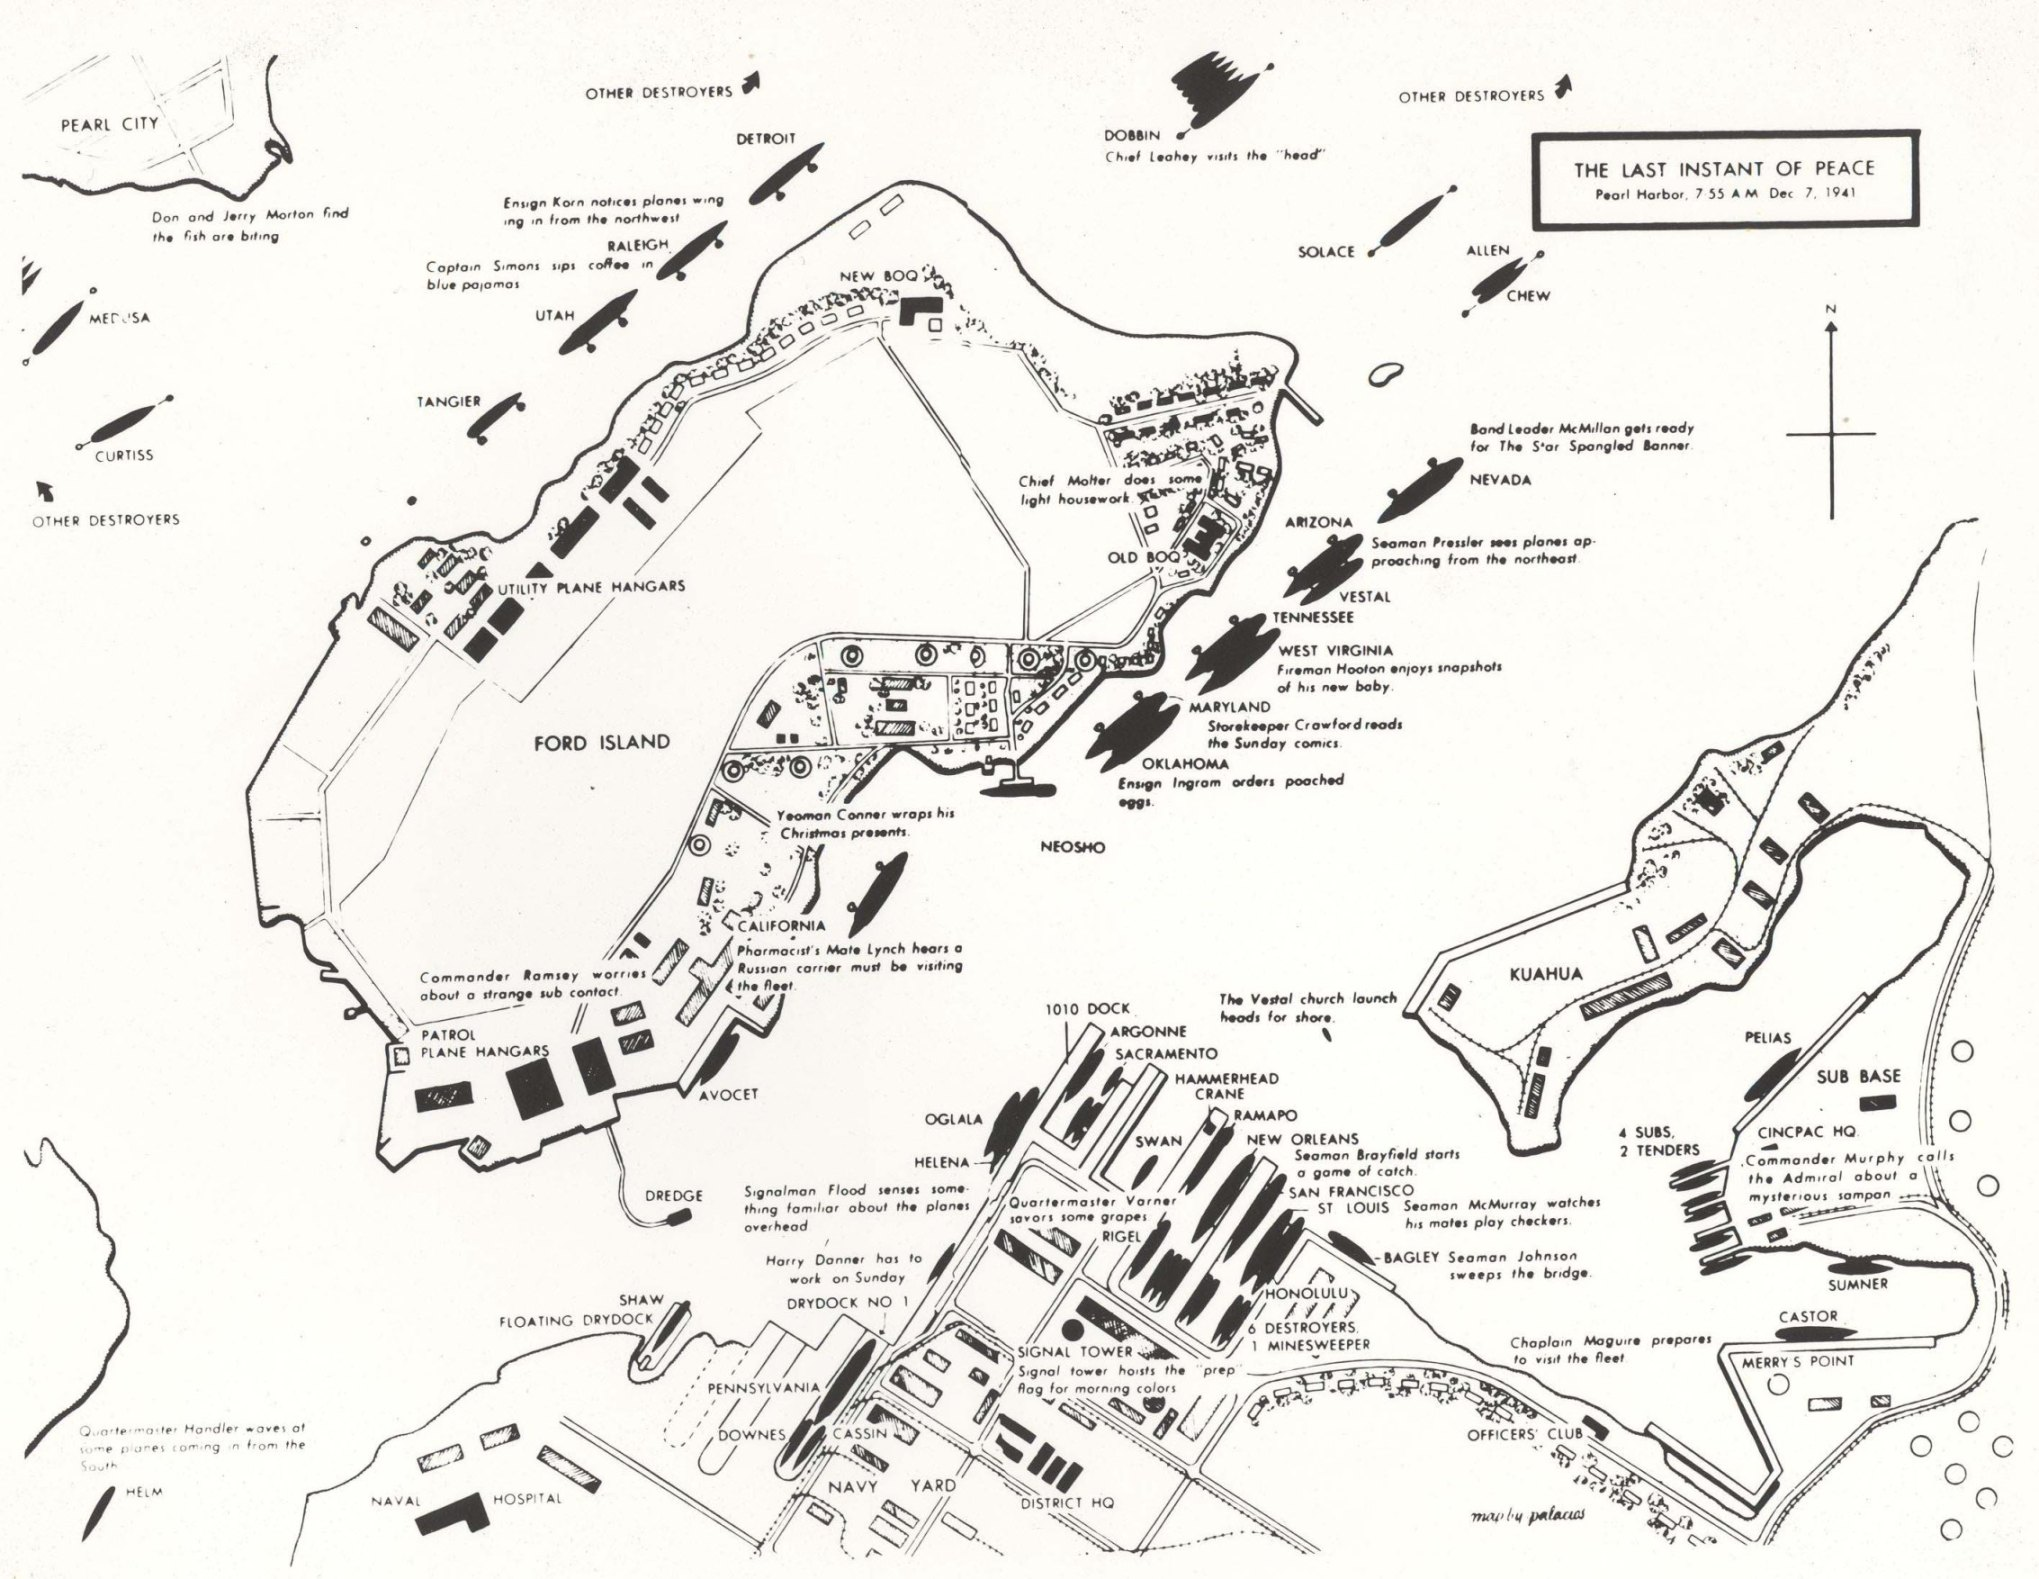 Pearl Harbour Map on